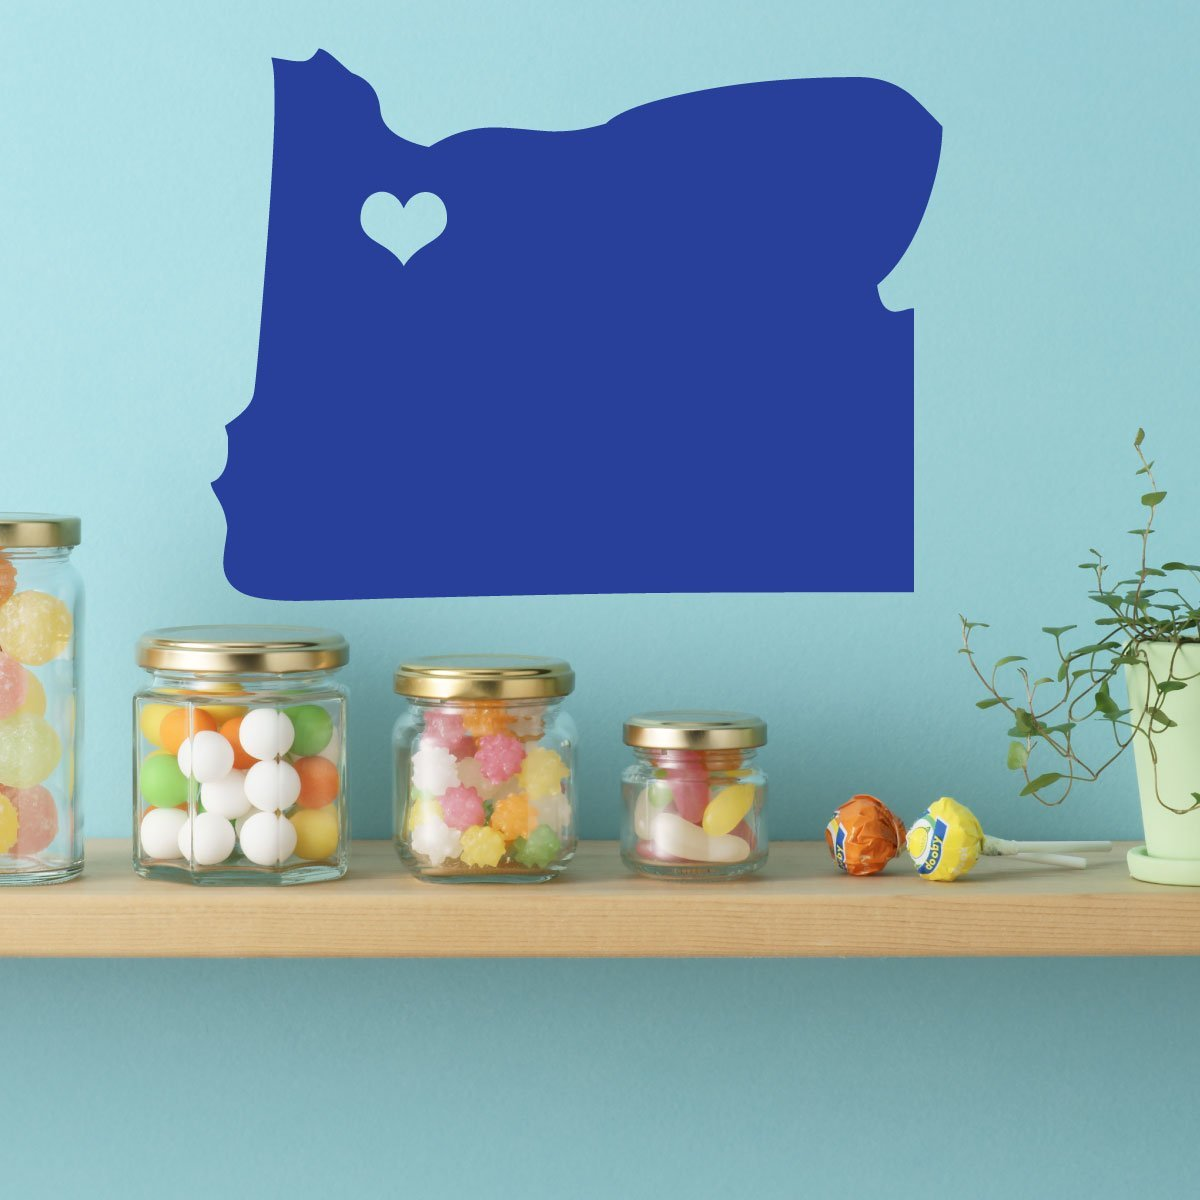 State Decals - Oregon Vinyl Wall Decor, 33rd State, Olympia Washington, Northeastern United States, The Beaver State